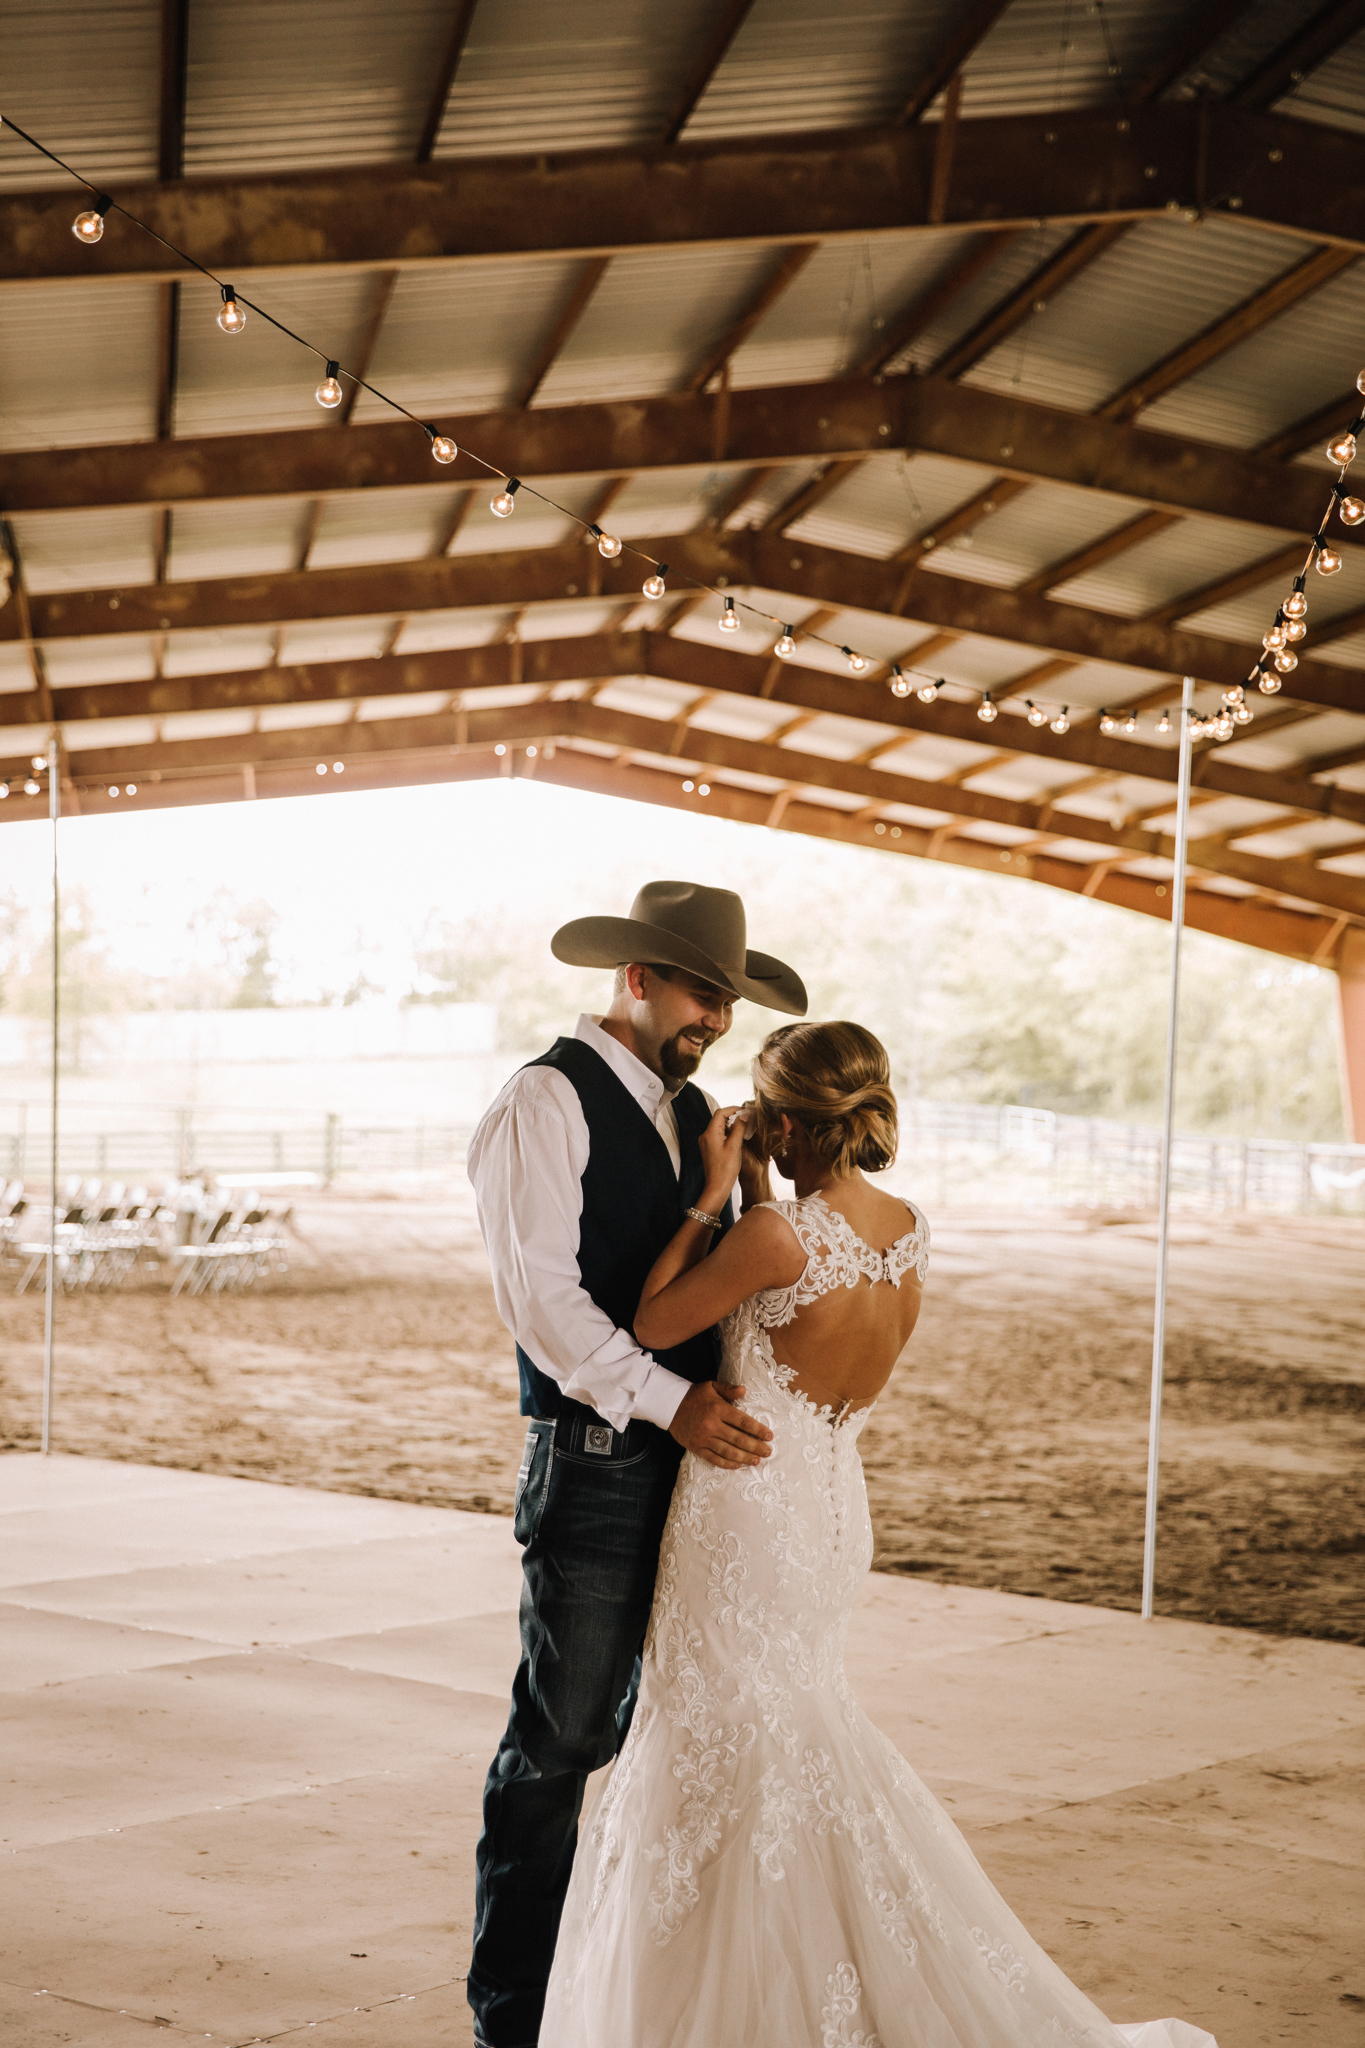 Wedding First Look: Minimalistic Barn Wedding featured on Nashville Bride Guide